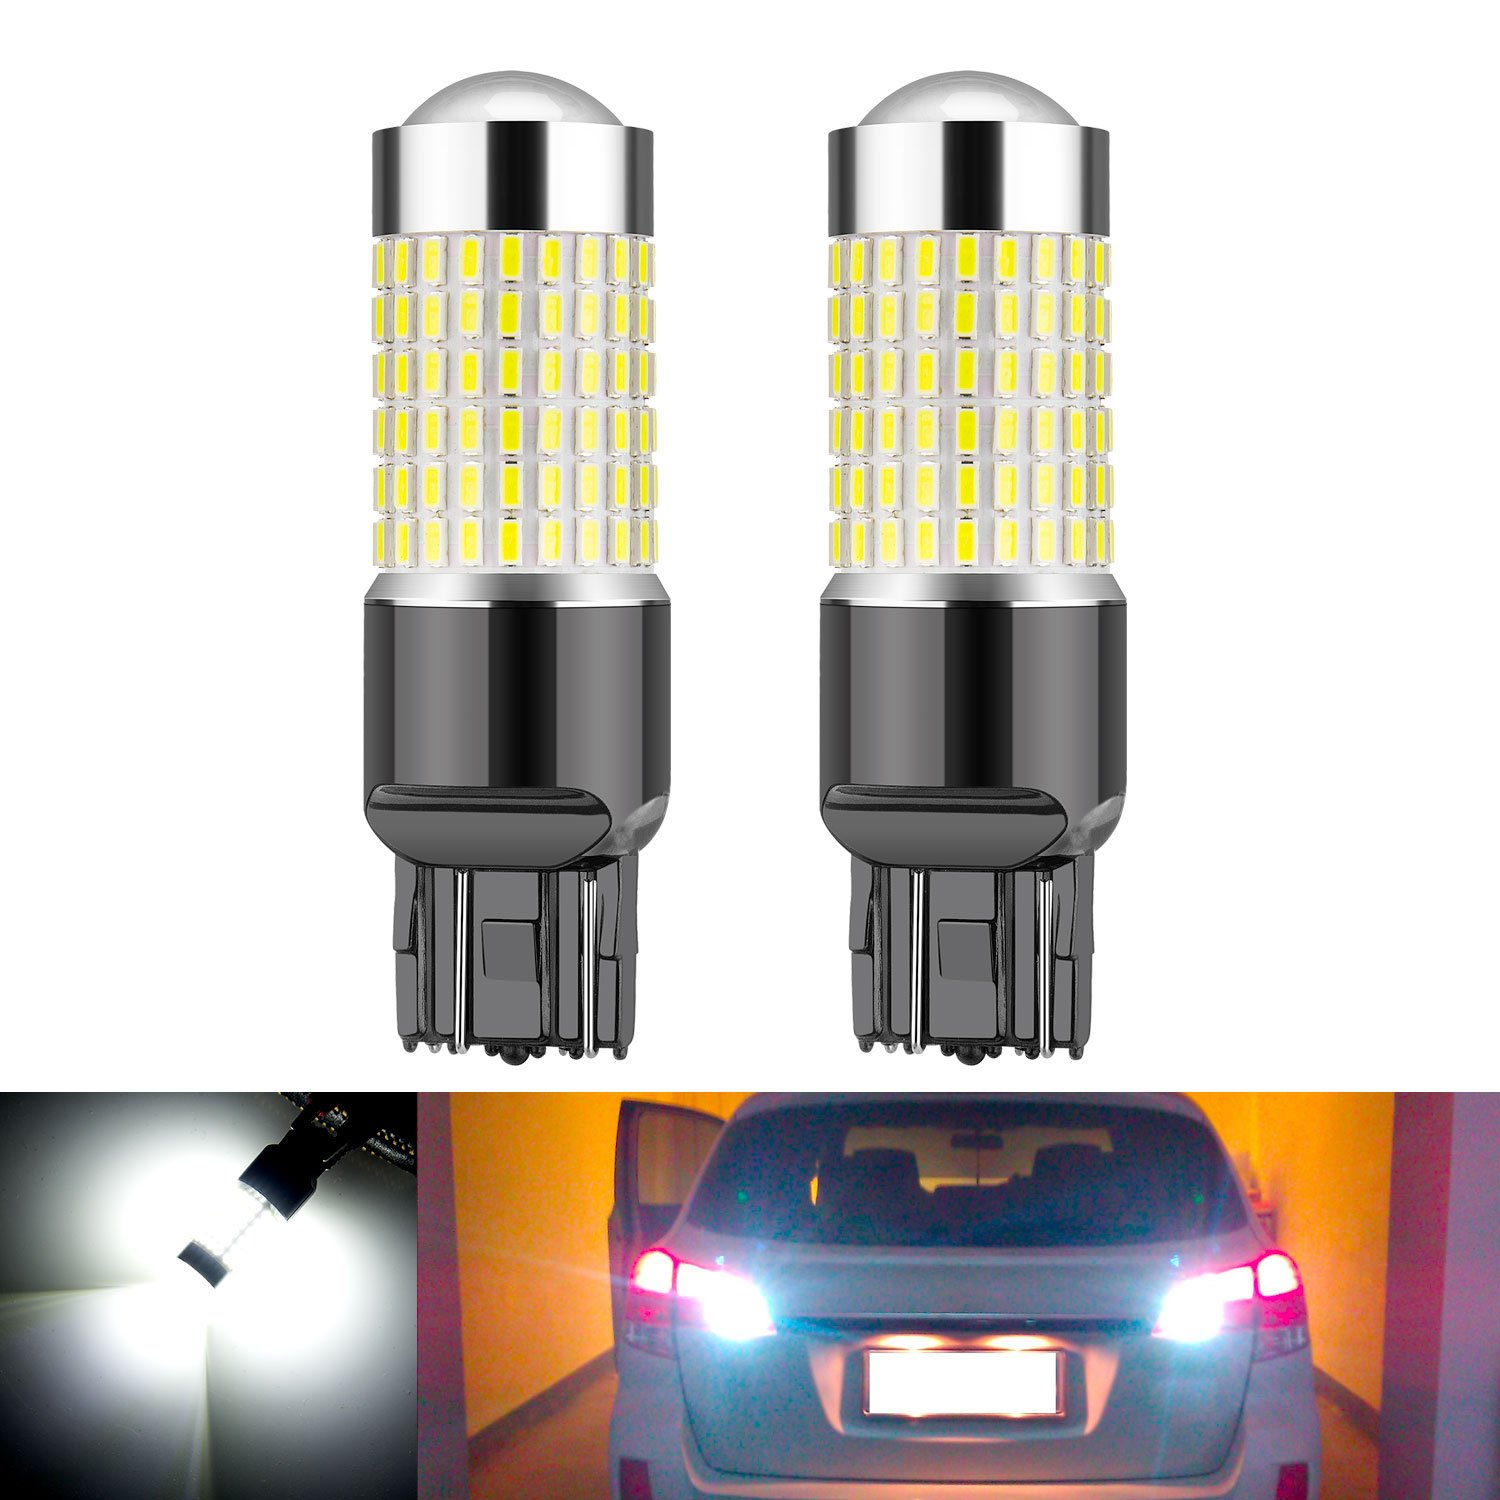 Rayhoo 1200 Lumens Super Bright 7440 7441 7443 7444 992 LED Bulbs ,Xenon White, Only for Back Up Reverse Lights (1200lumens)